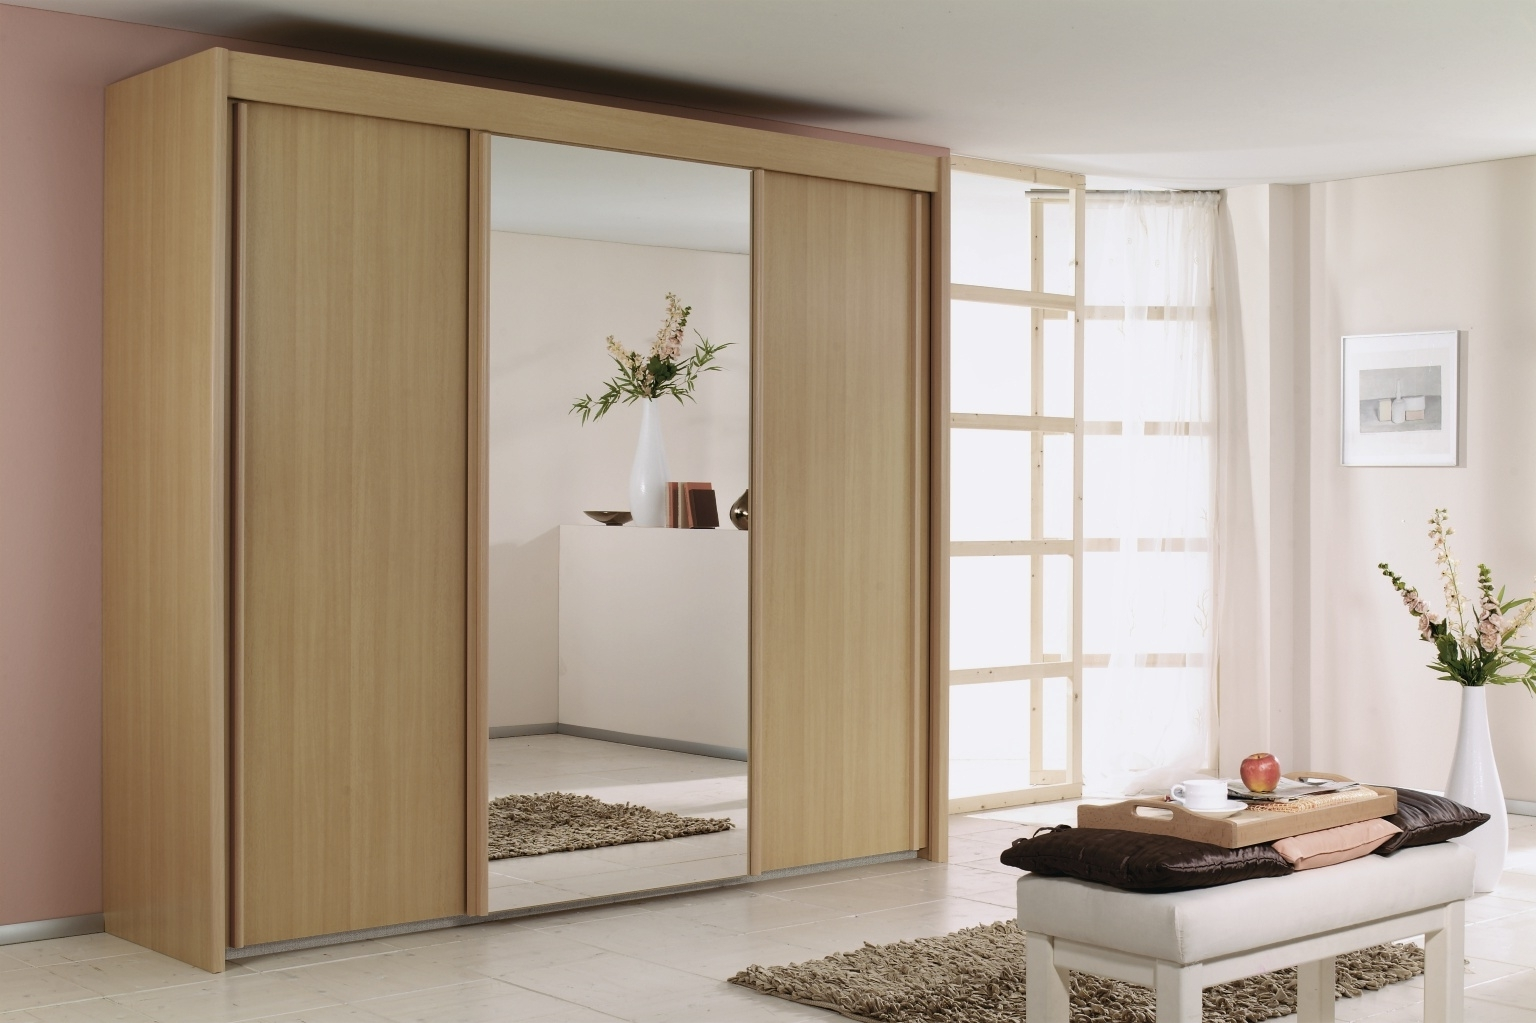 Imperial Wardrobes With Regard To Latest Rauch Imperial Sliding Wardrobe – Furniture Brothers (Gallery 11 of 15)